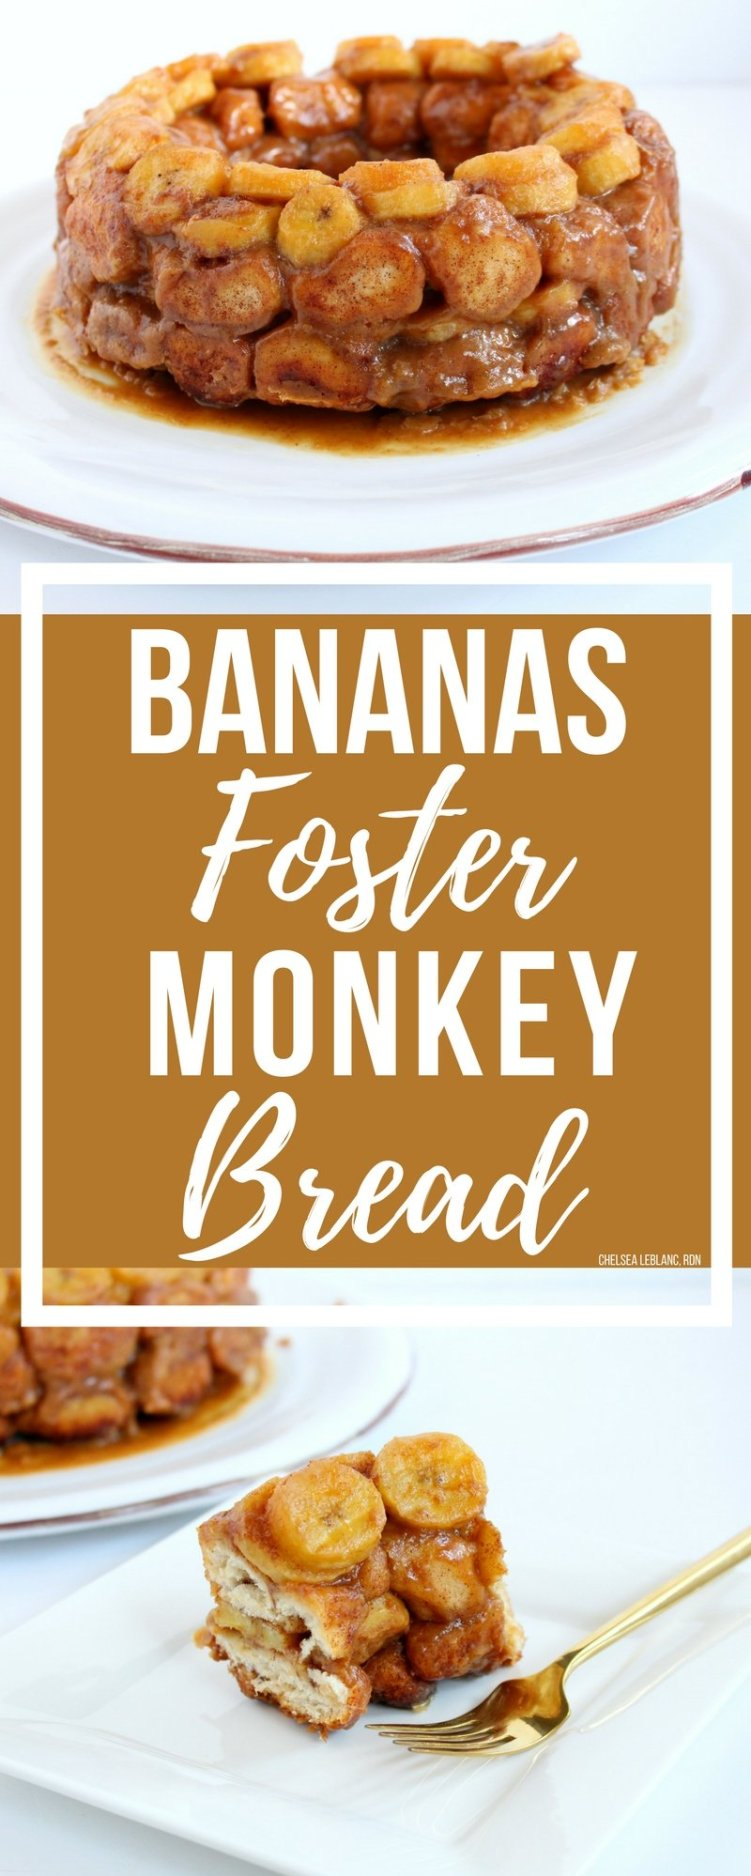 #AD Sweet, ooey gooey, monkey bread gets a Cajun twist with my lightened-up Bananas Foster Monkey Bread. This decadent treat is complete with a bourbon caramel sauce that will have you thinking you're in the French Quarter!